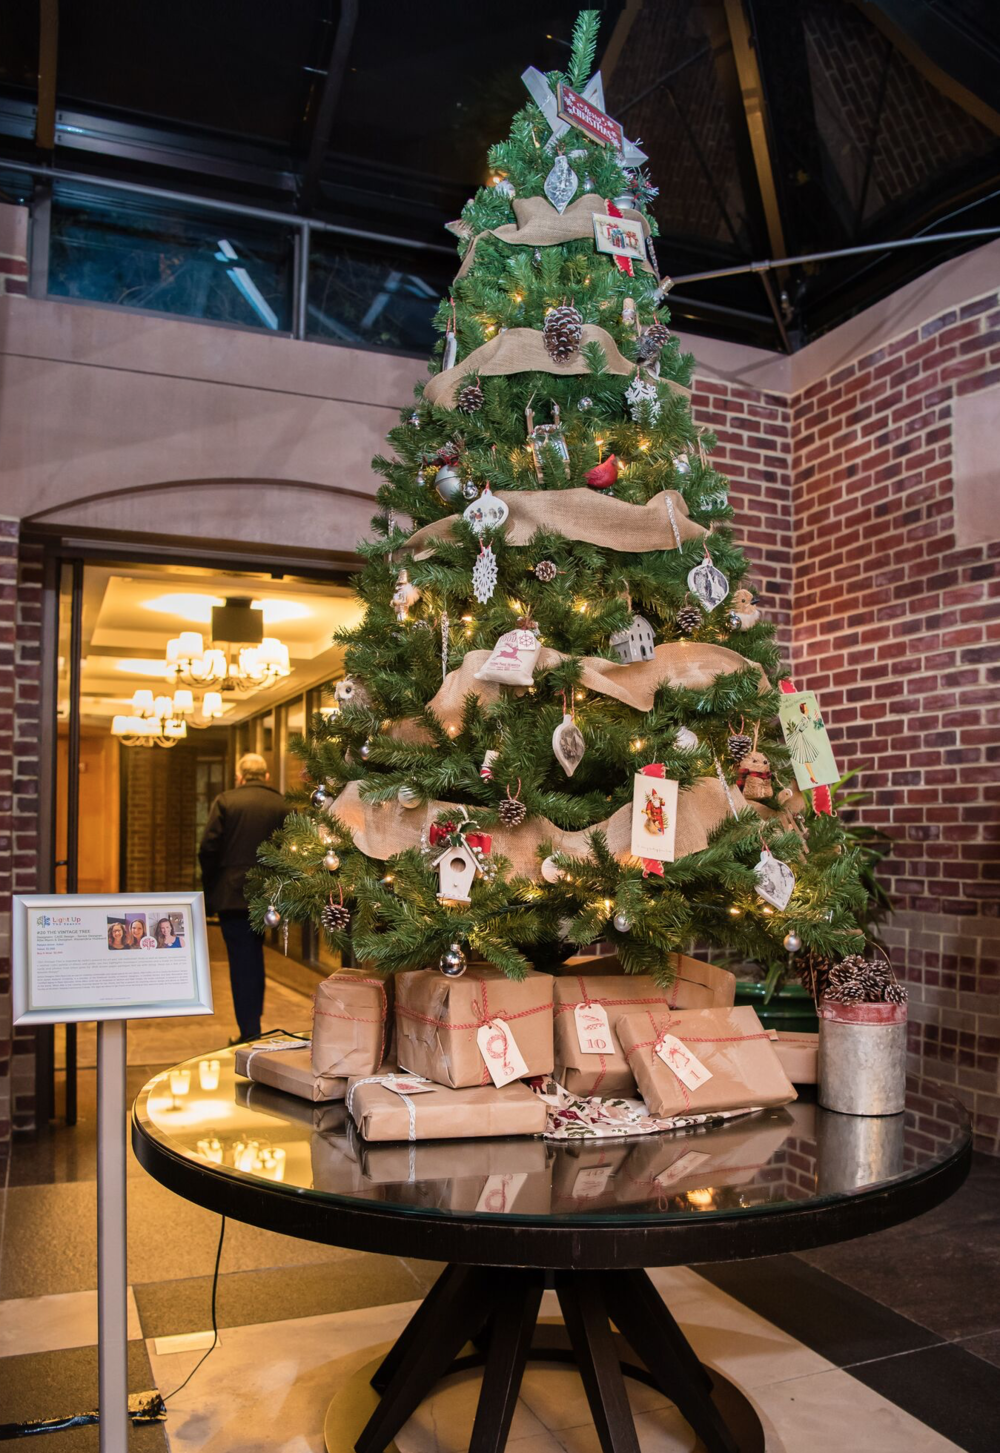 A chic and neutral tree spruced up with burlap and natural ornaments keep things classic and timeless this holiday season -not to mention kid and family friendly. -